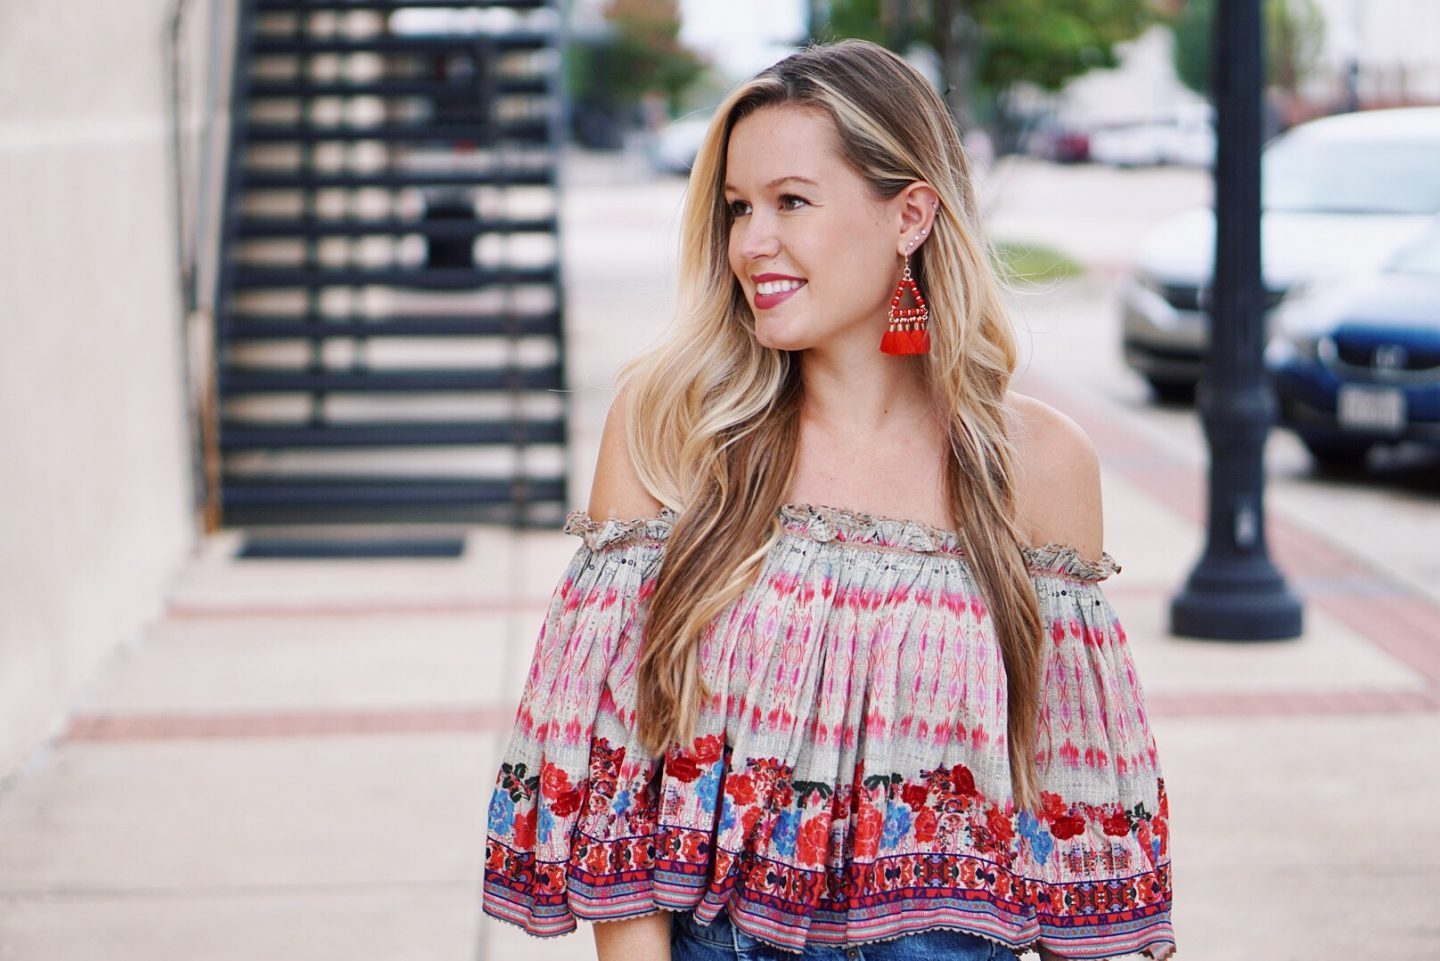 Flirty and Fun in Floral and Fringe!